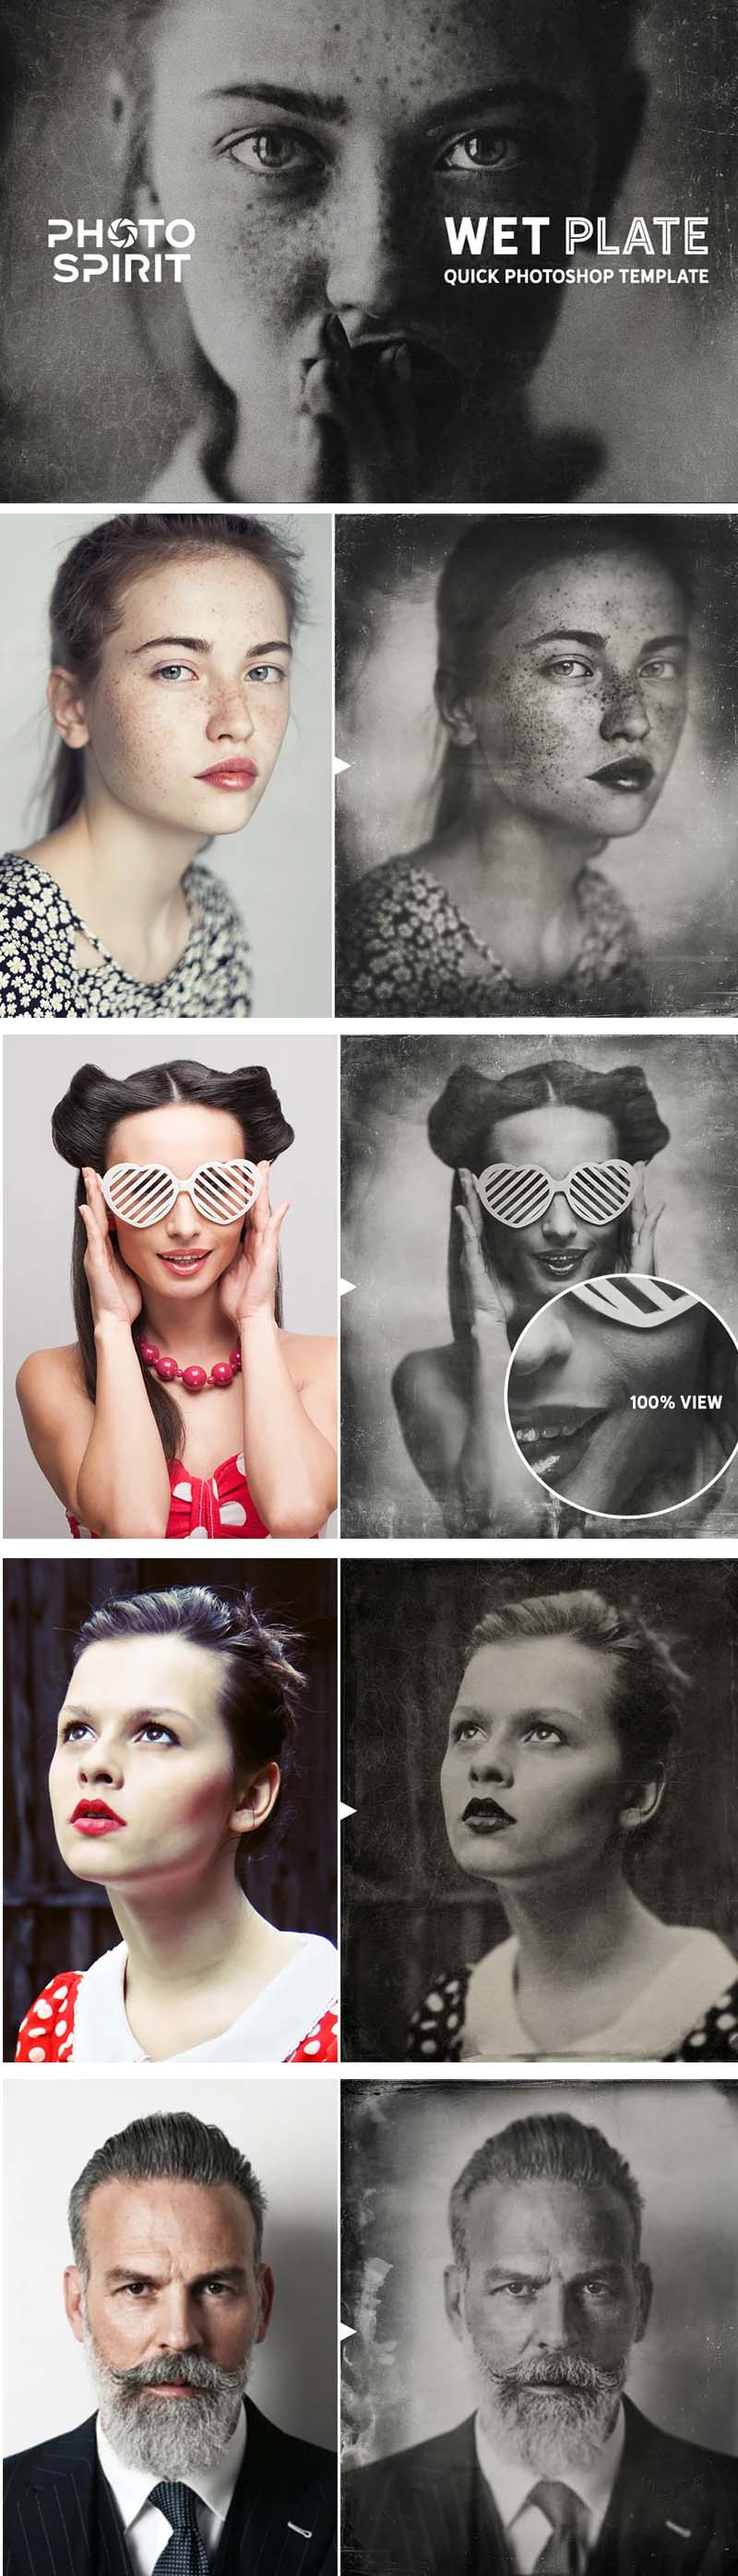 16 WET PLATE Effect Photoshop Template